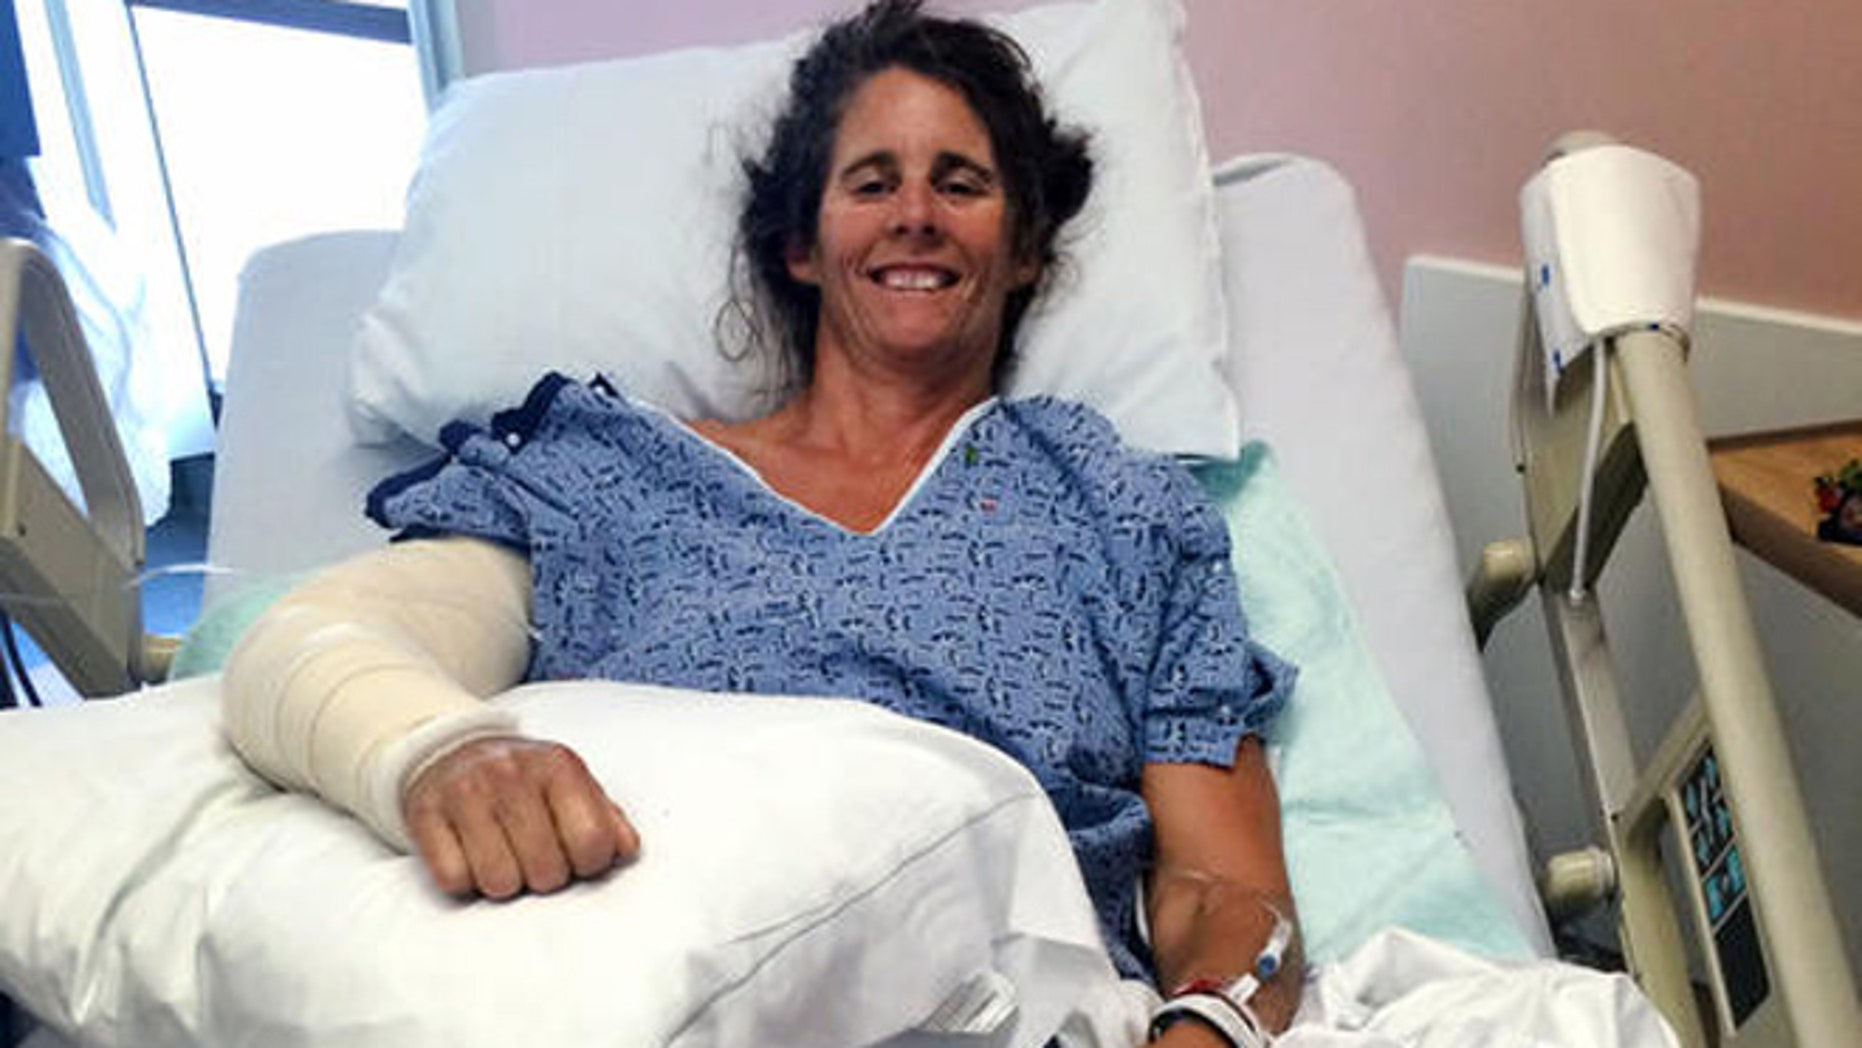 This Thursday, June 2, 2016 photo provided by Orange County Global Medical Center shows Maria Korcsmaros recovering in her hospital bed at Orange County Global Medical Center in Santa Ana, Calif.